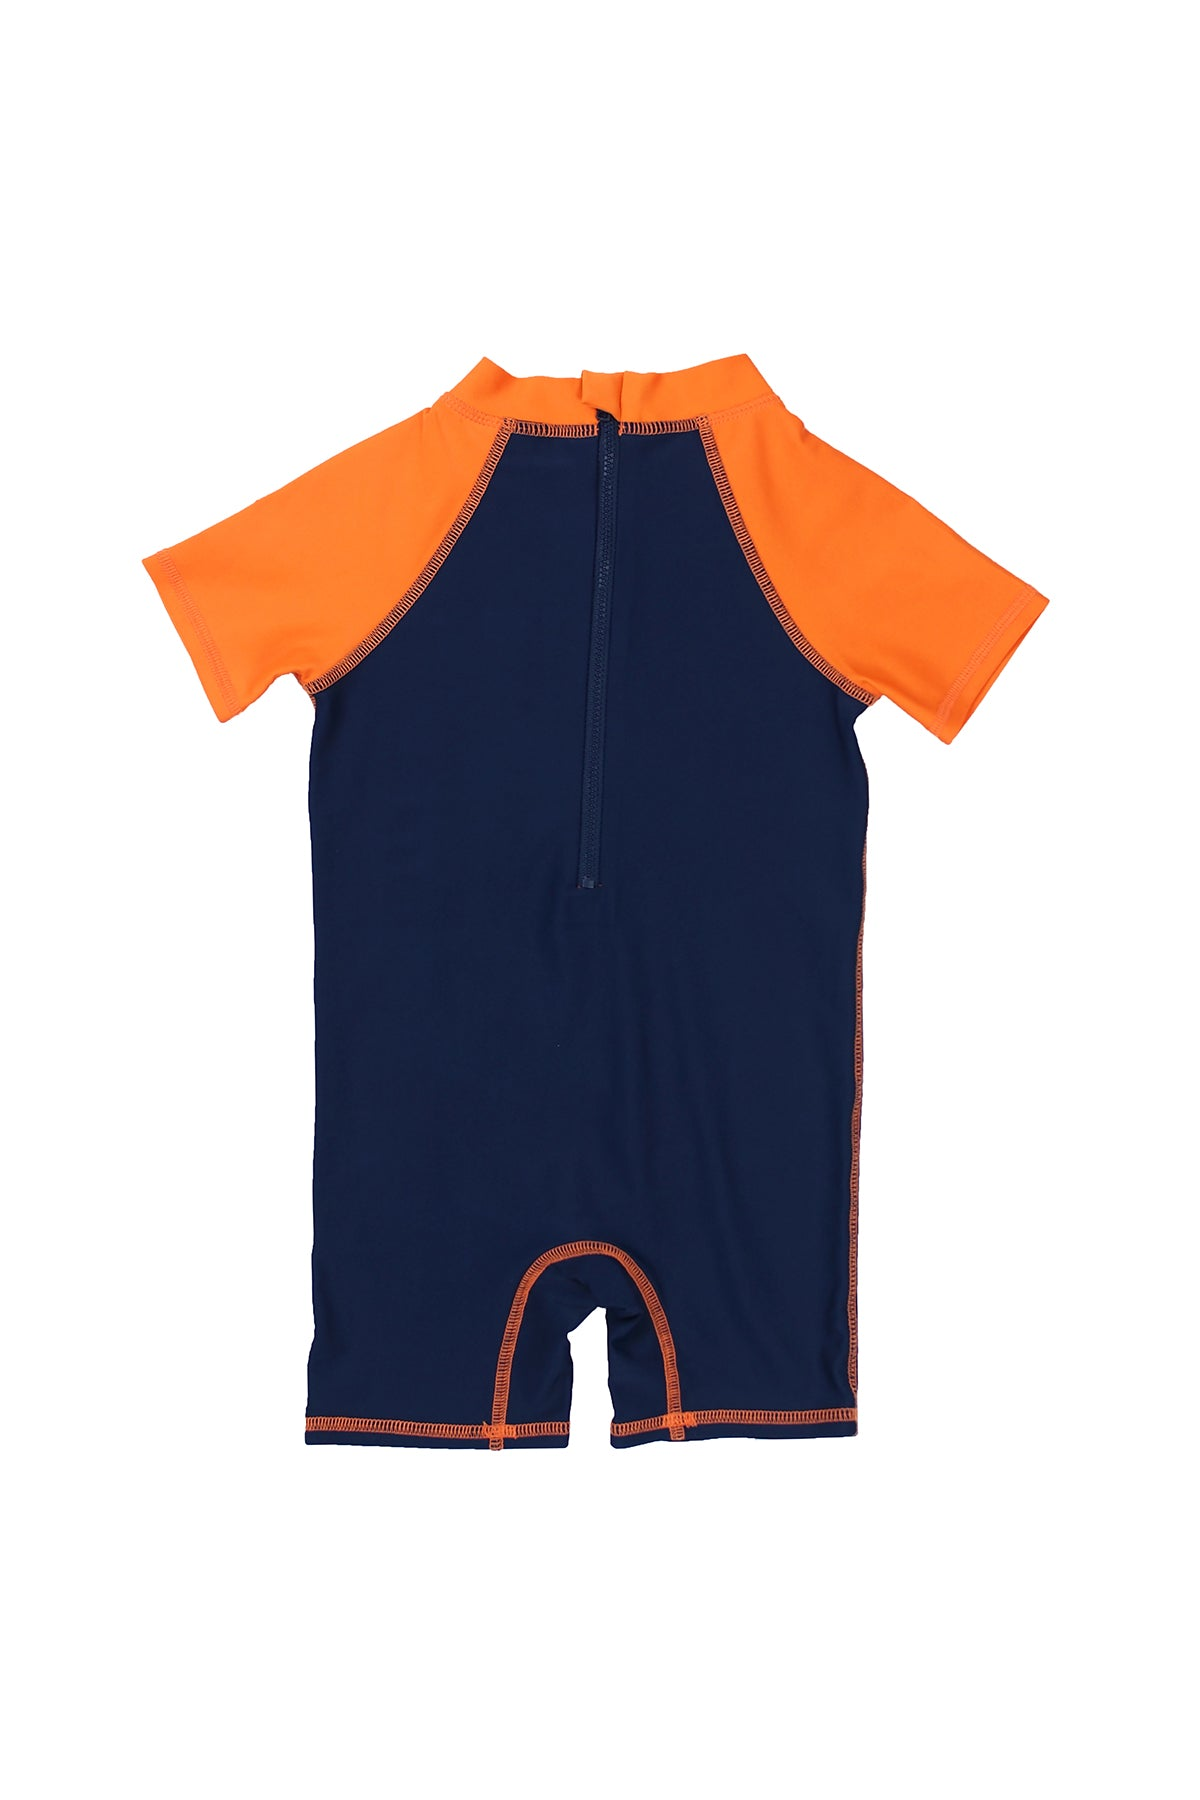 Boys Surfboard Short Sleeve Half Zip One Piece Swim Sunsuit, navy